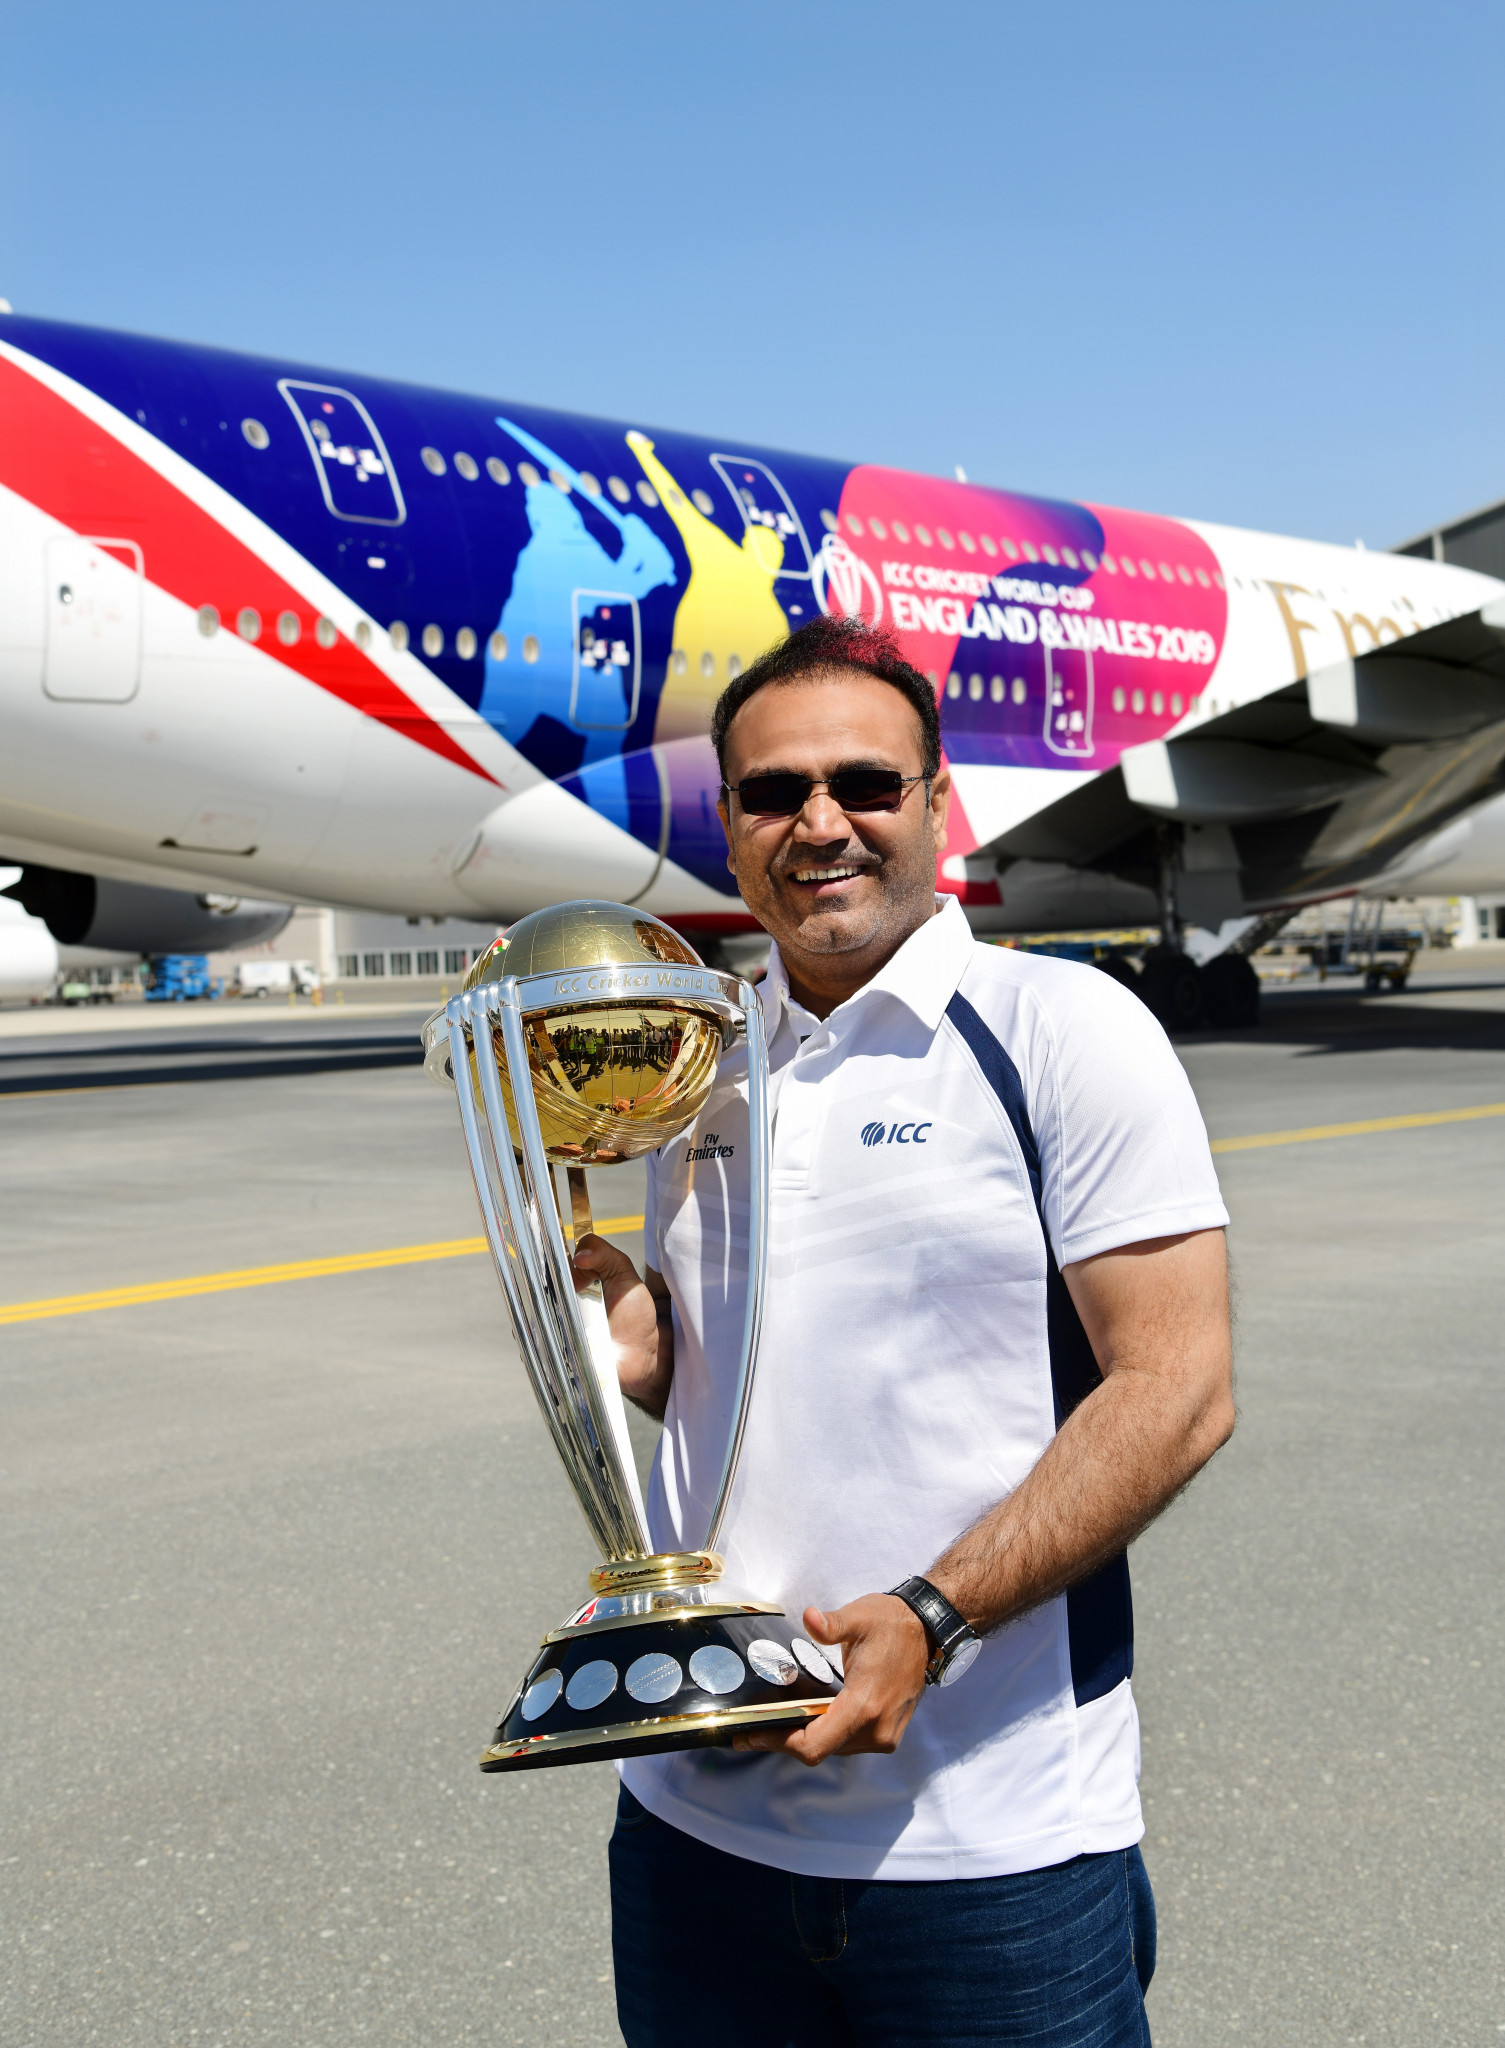 Former India cricketer Virender Sehwag showed off the Men's Cricket World Cup trophy ©ICC